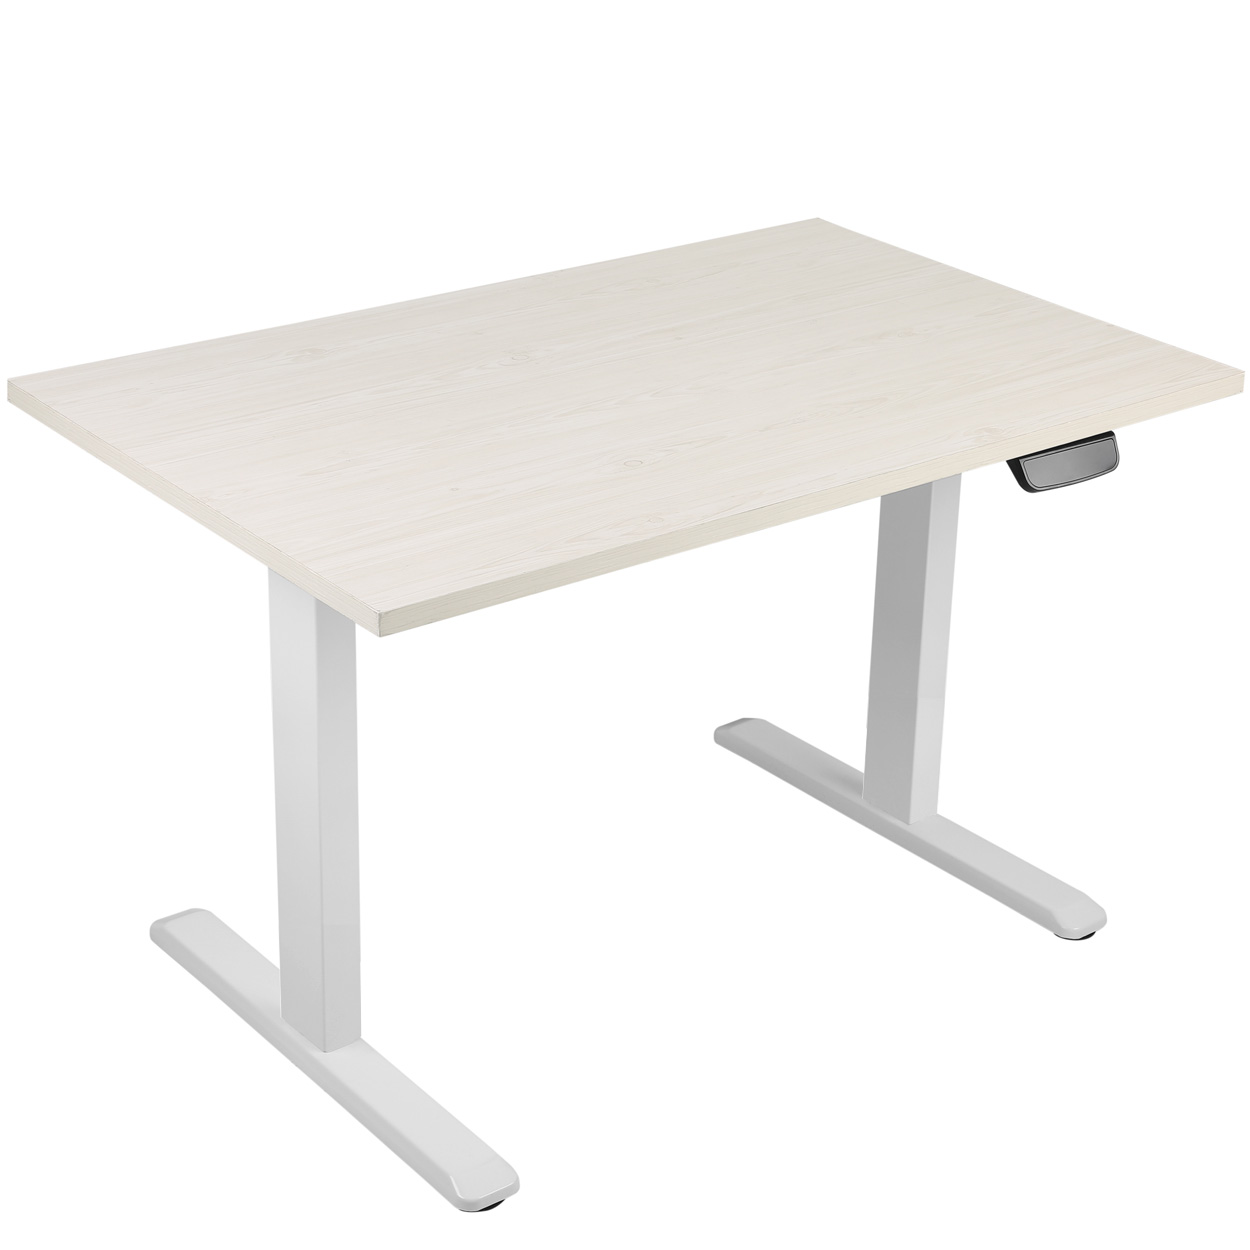 Single Motor Electric Adjustable Height Sit or Stand Desk Frame - White